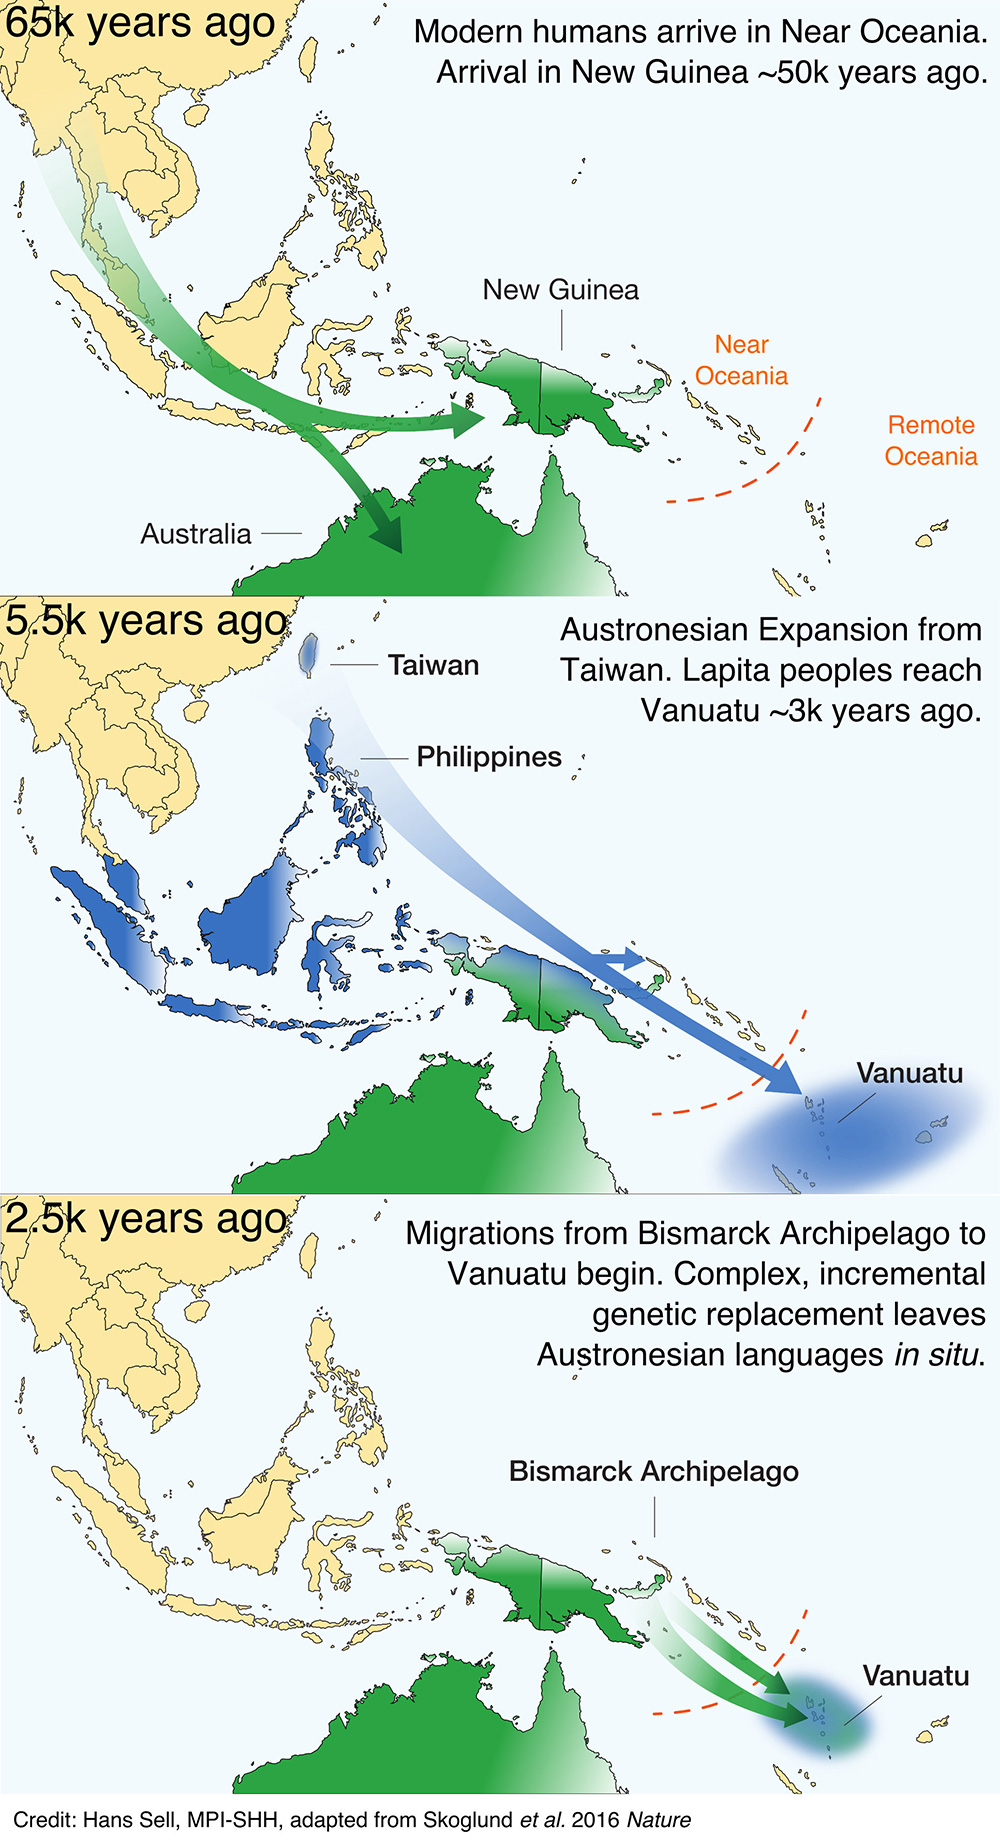 ancient-dna-migrations-oceania